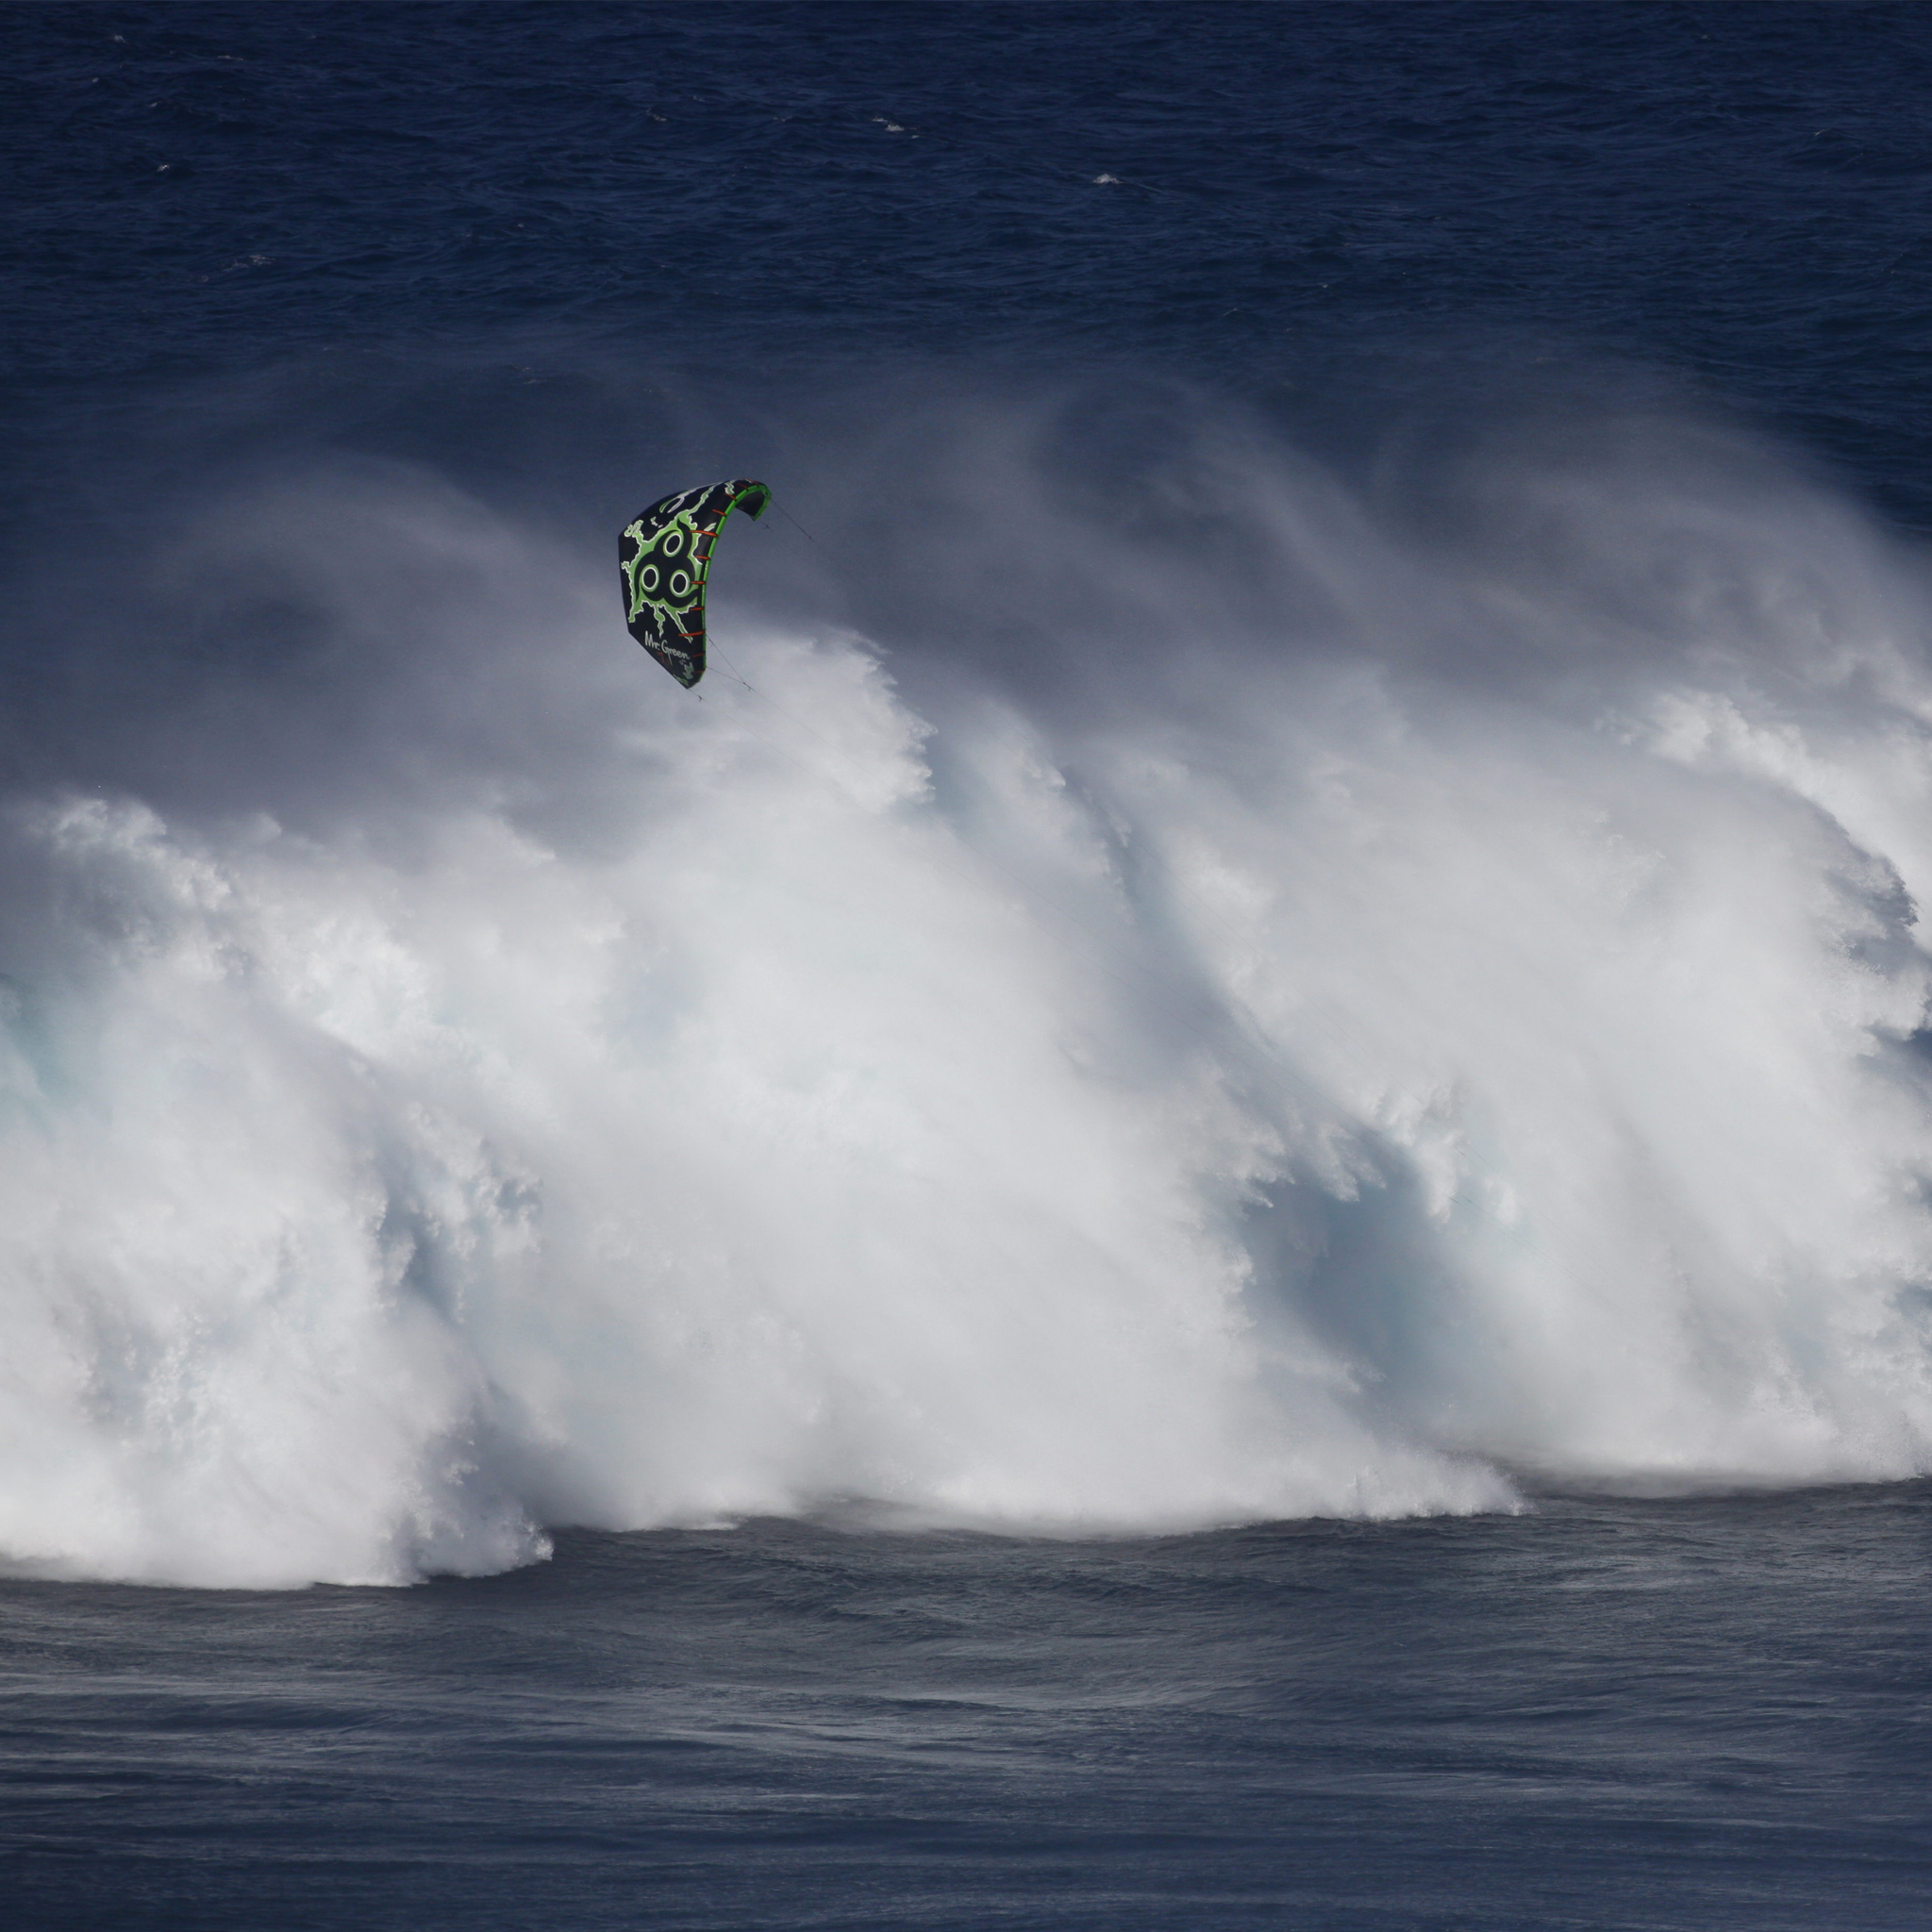 kitesurf wallpaper image - Niccolo Porcella in the grinder on a huge day at Jaws with his Wainman Hawaii Rabbit kite - in resolution: iPad 2 & 3 2048 X 2048